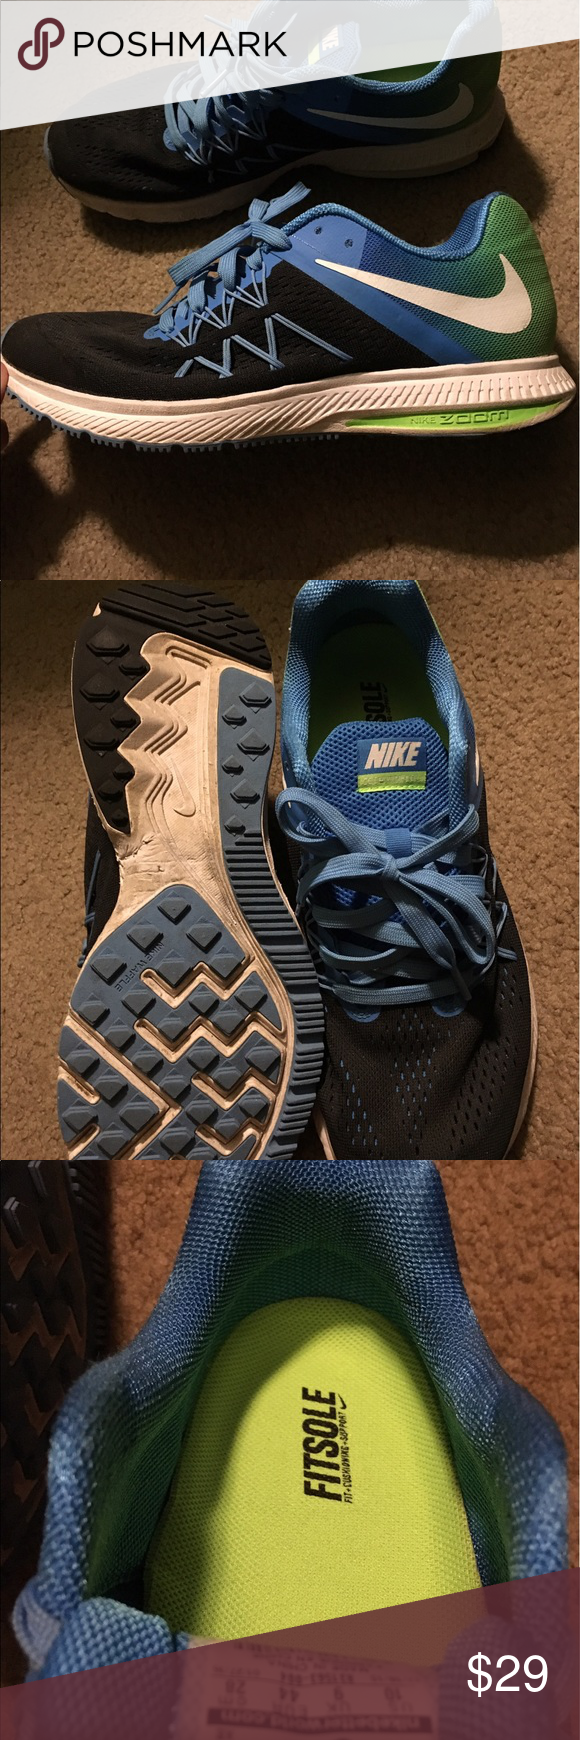 Men's shoes Men's Nike my son used them just once to small for him perfect condition pretty colors black blue and lime very light and comfortable Nike Shoes Athletic Shoes